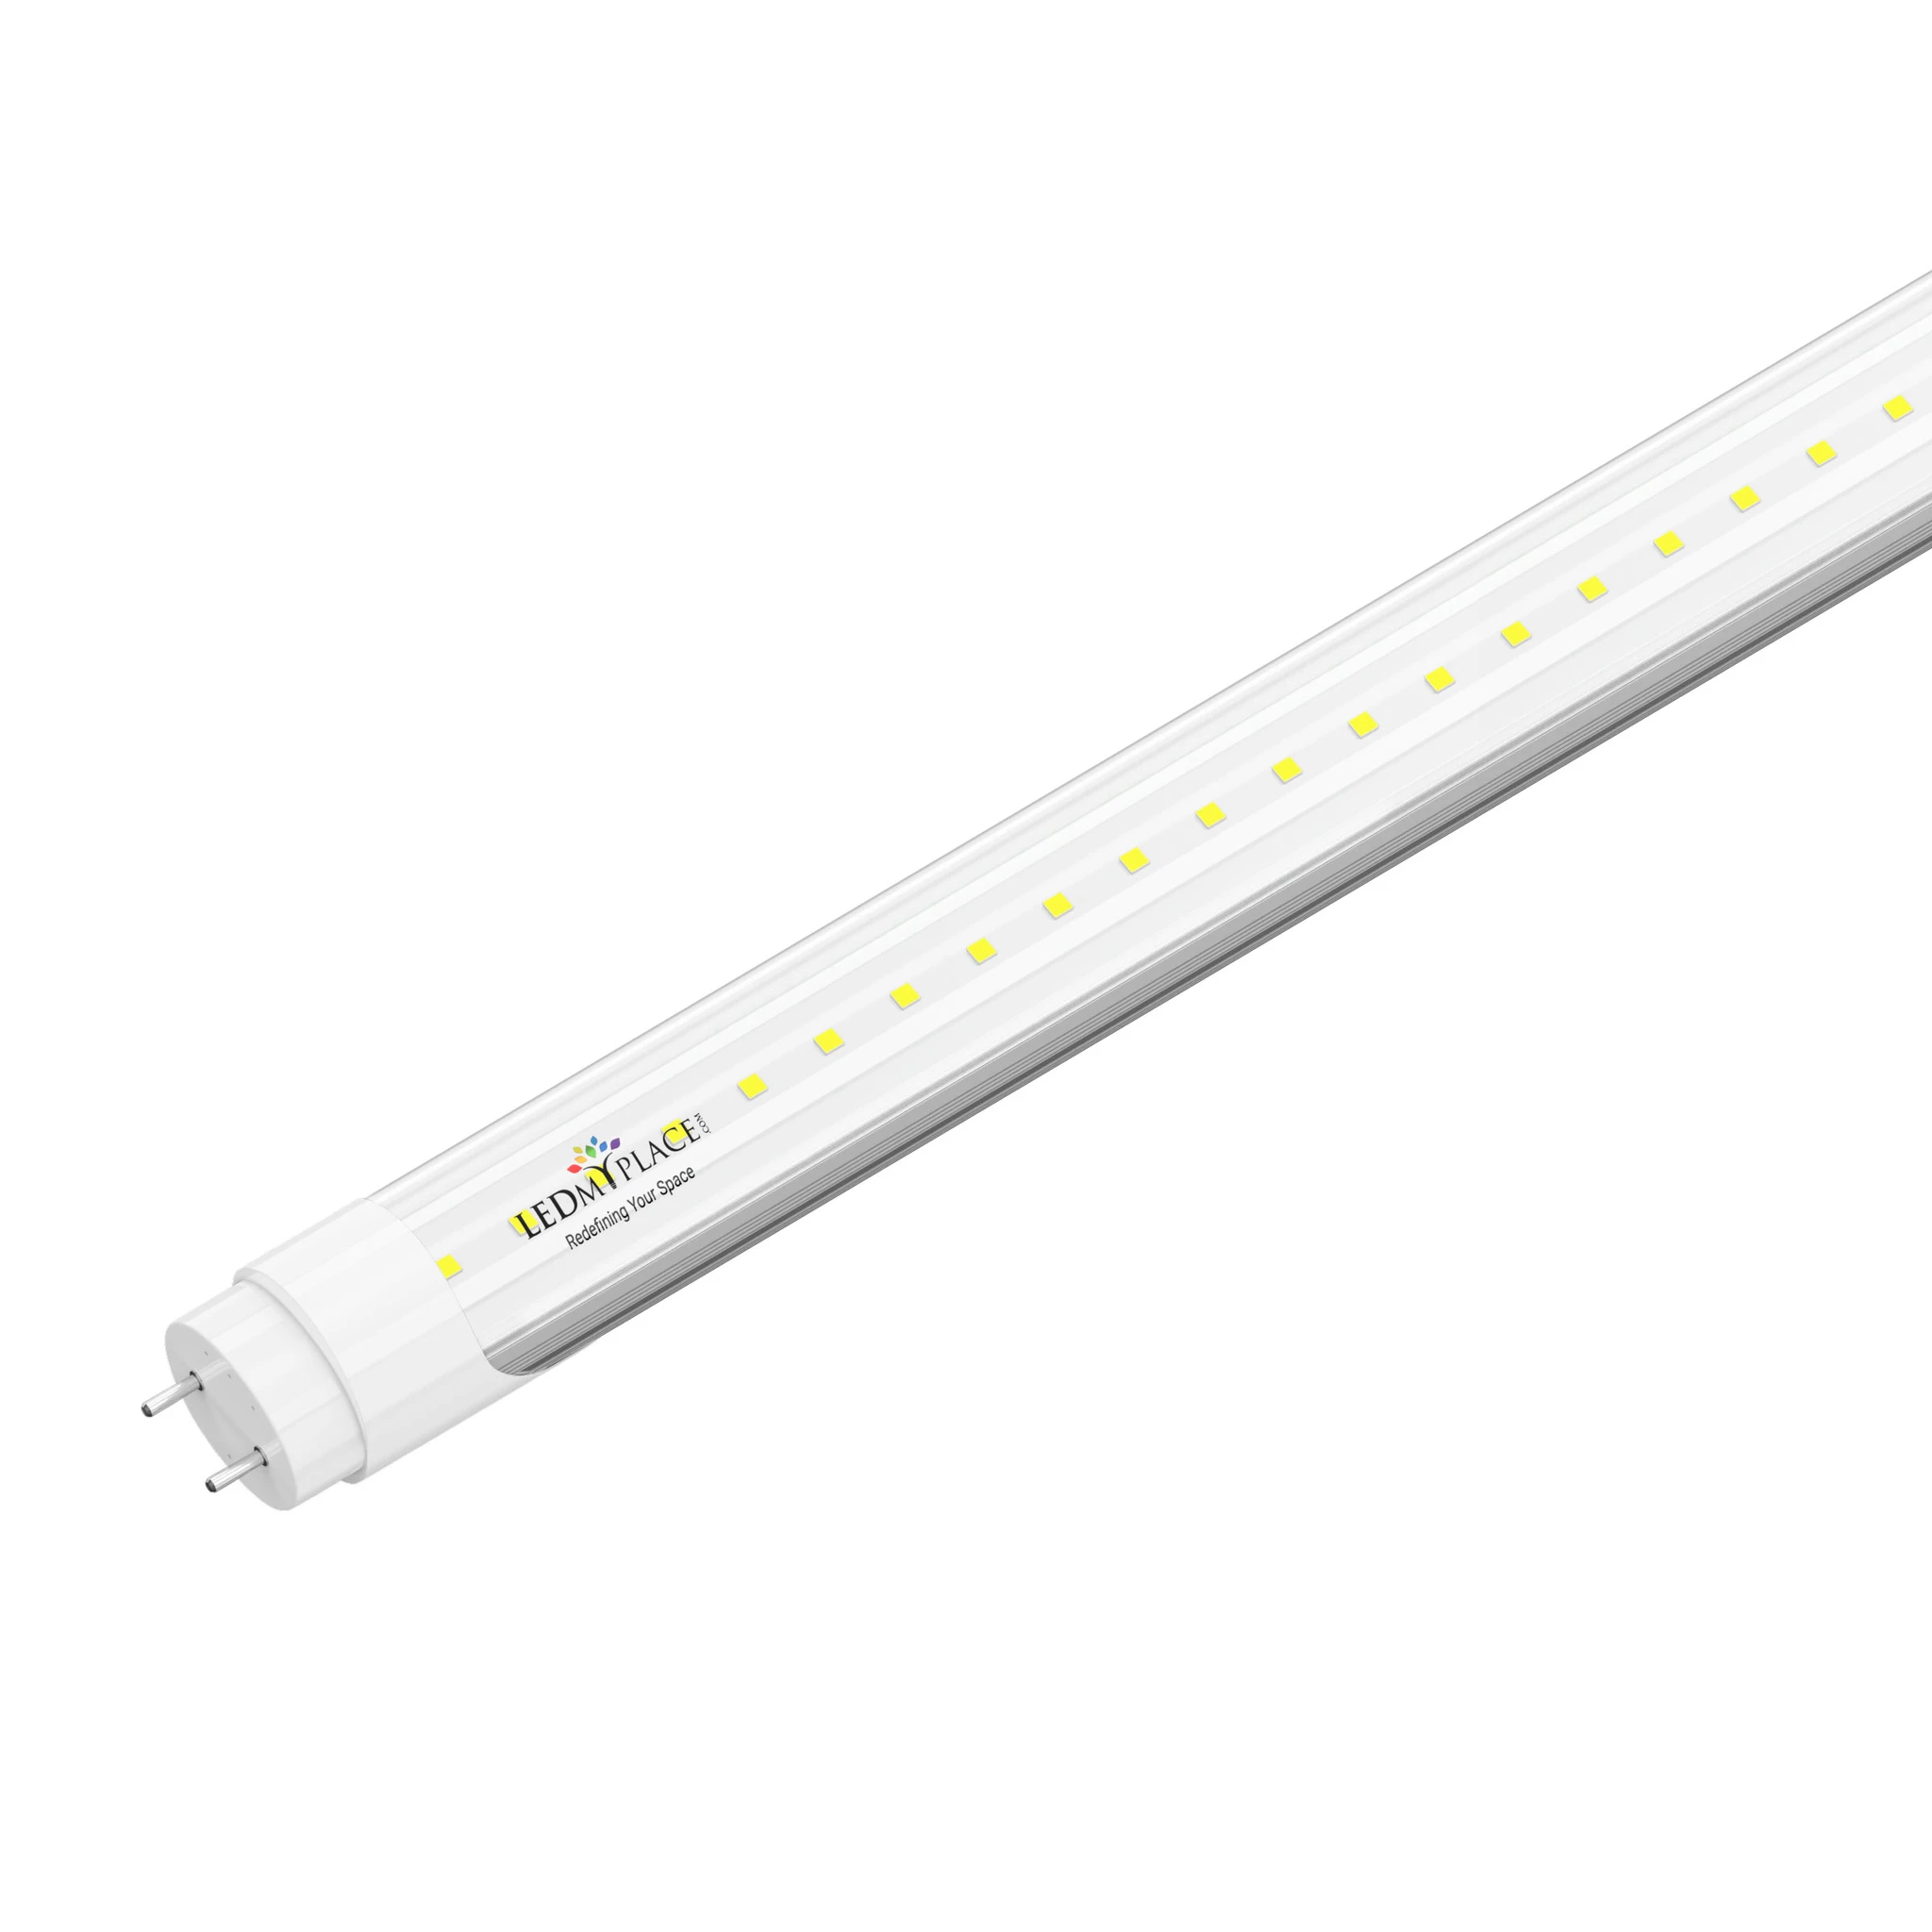 T8 4 foot LED Light Fixture 22W 3000 Lumens 5000K Clear Single Ended Power, 4ft LED Light Bulbs